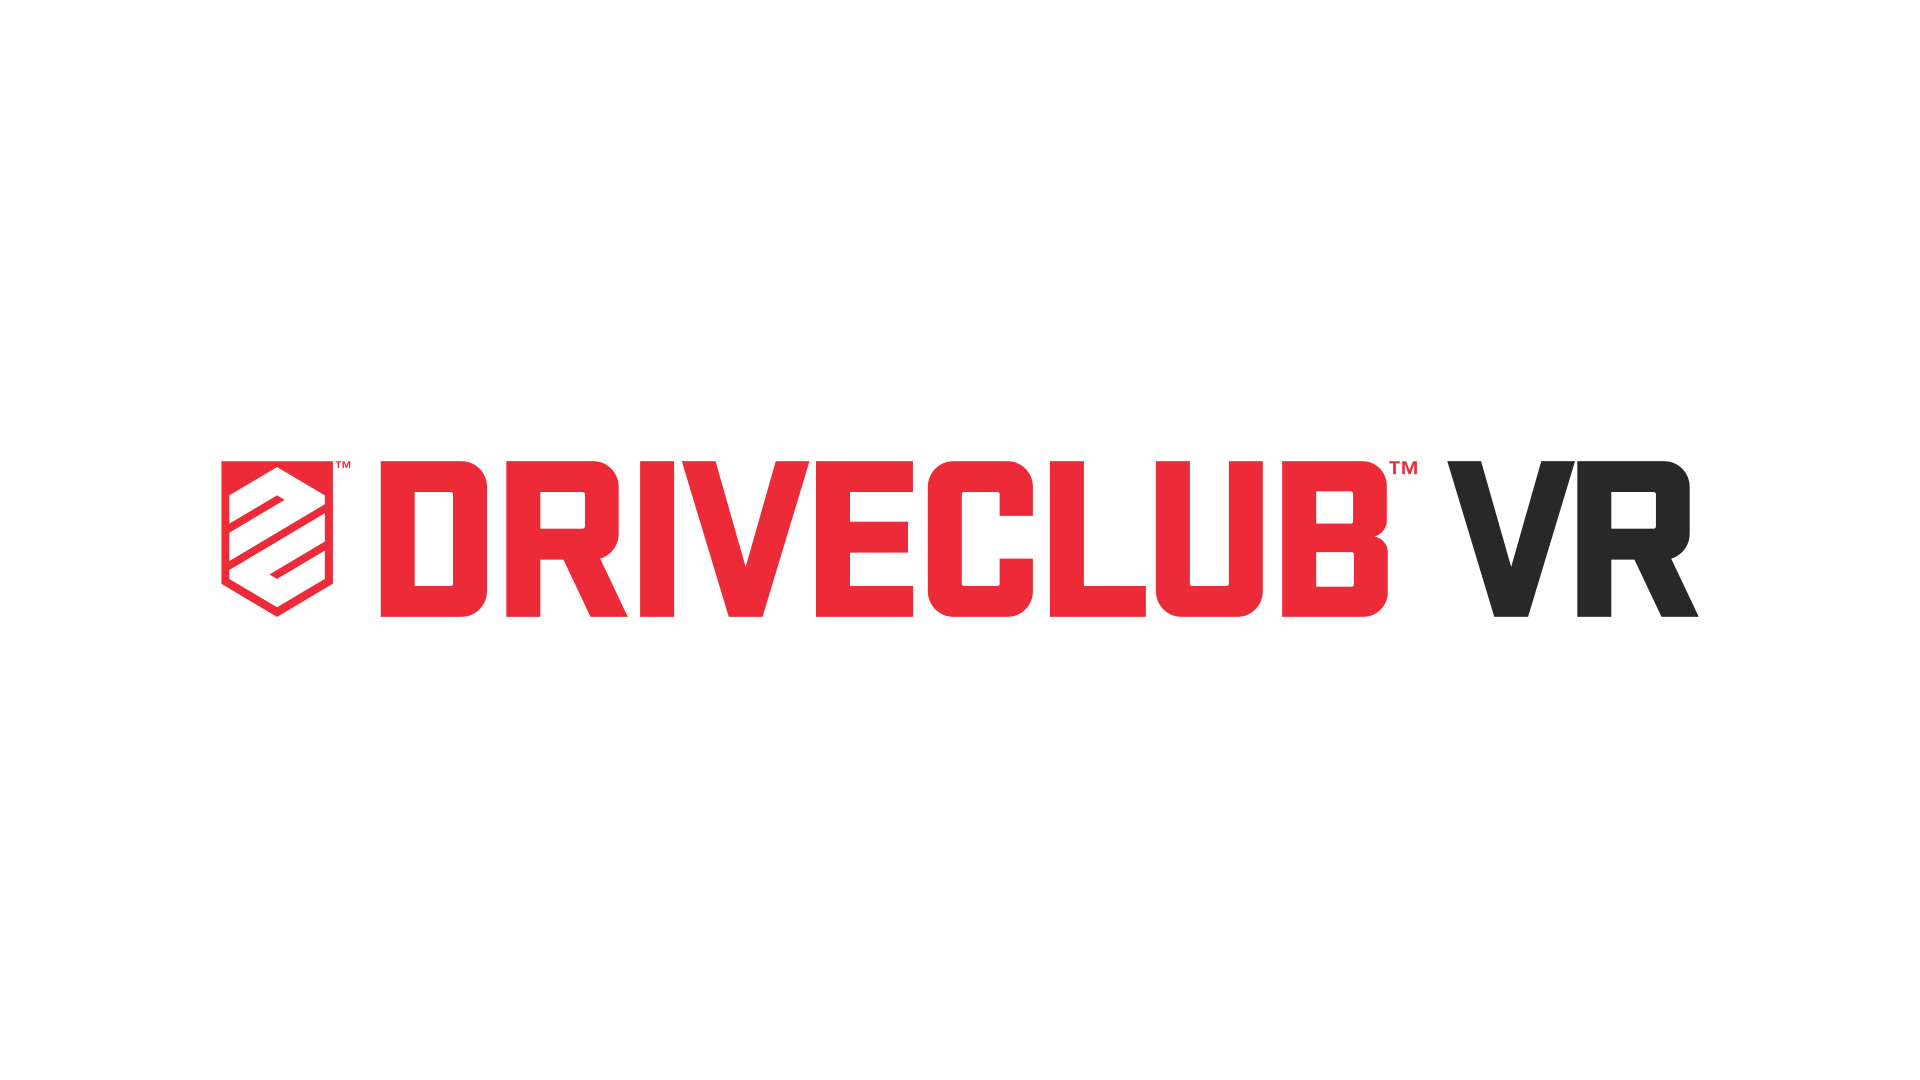 Driveclub VR Full HD Wallpaper And Background Image